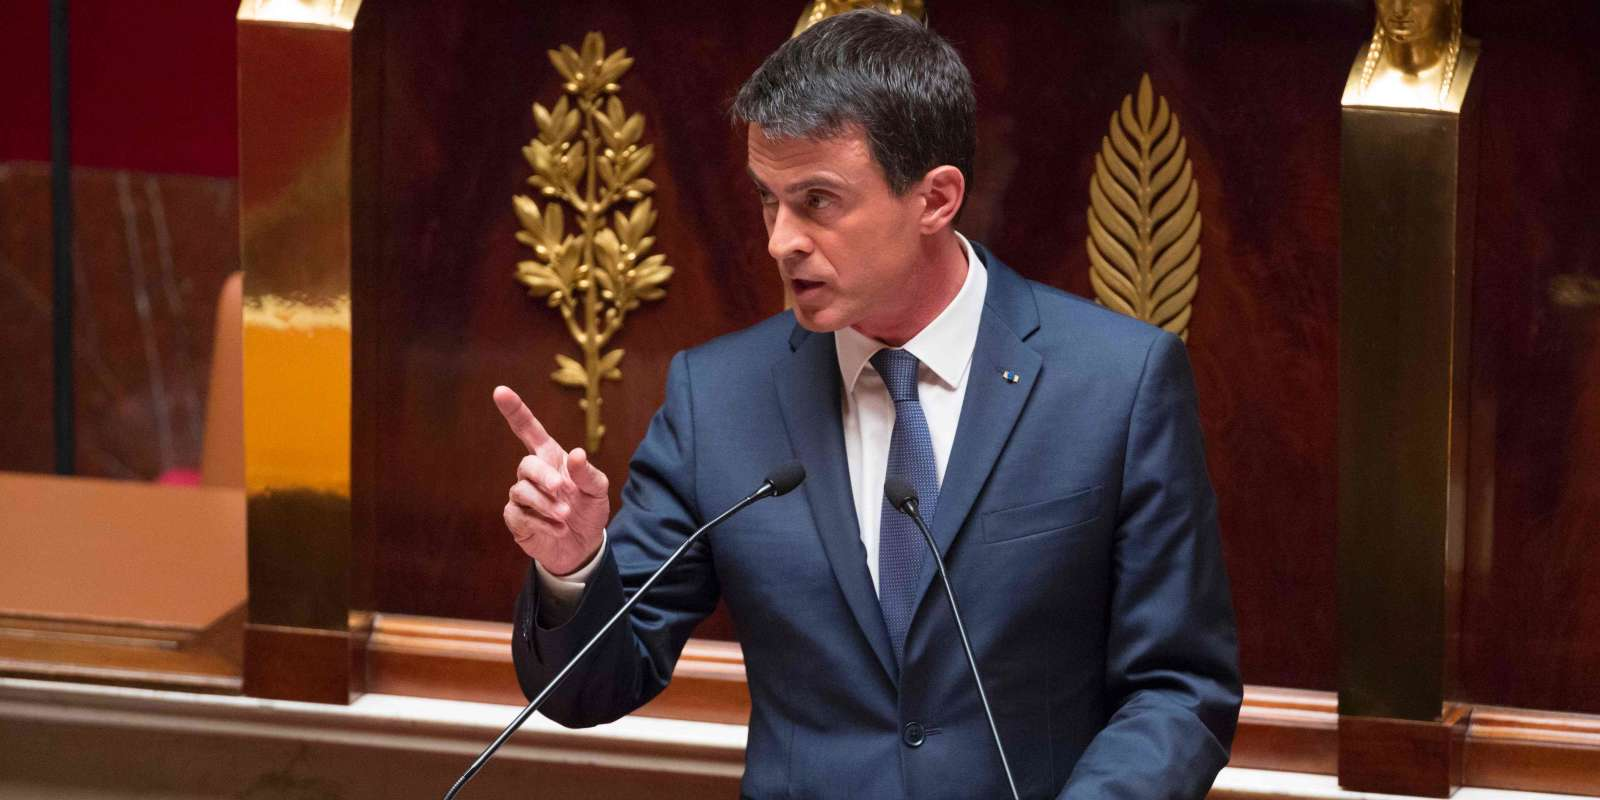 French Prime minister Manuel Valls gives a speech during a debate following by a no-confidence vote, on May 12, 2016 at the National Assembly in Paris. France's embattled Socialist government faces a no-confidence vote on May 12 after bypassing parliament to force through a labour reform bill that has drawn hundreds of thousands onto the streets over the last two months. The proposed labour reform, which would make it easier for employers to hire and fire workers, has sparked waves of sometimes violent protests across France since early March. Hollande's cabinet decided at an extraordinary meeting on May 10, 2016 to invoke the constitution's controversial Article 49.3. / AFP / GEOFFROY VAN DER HASSELT